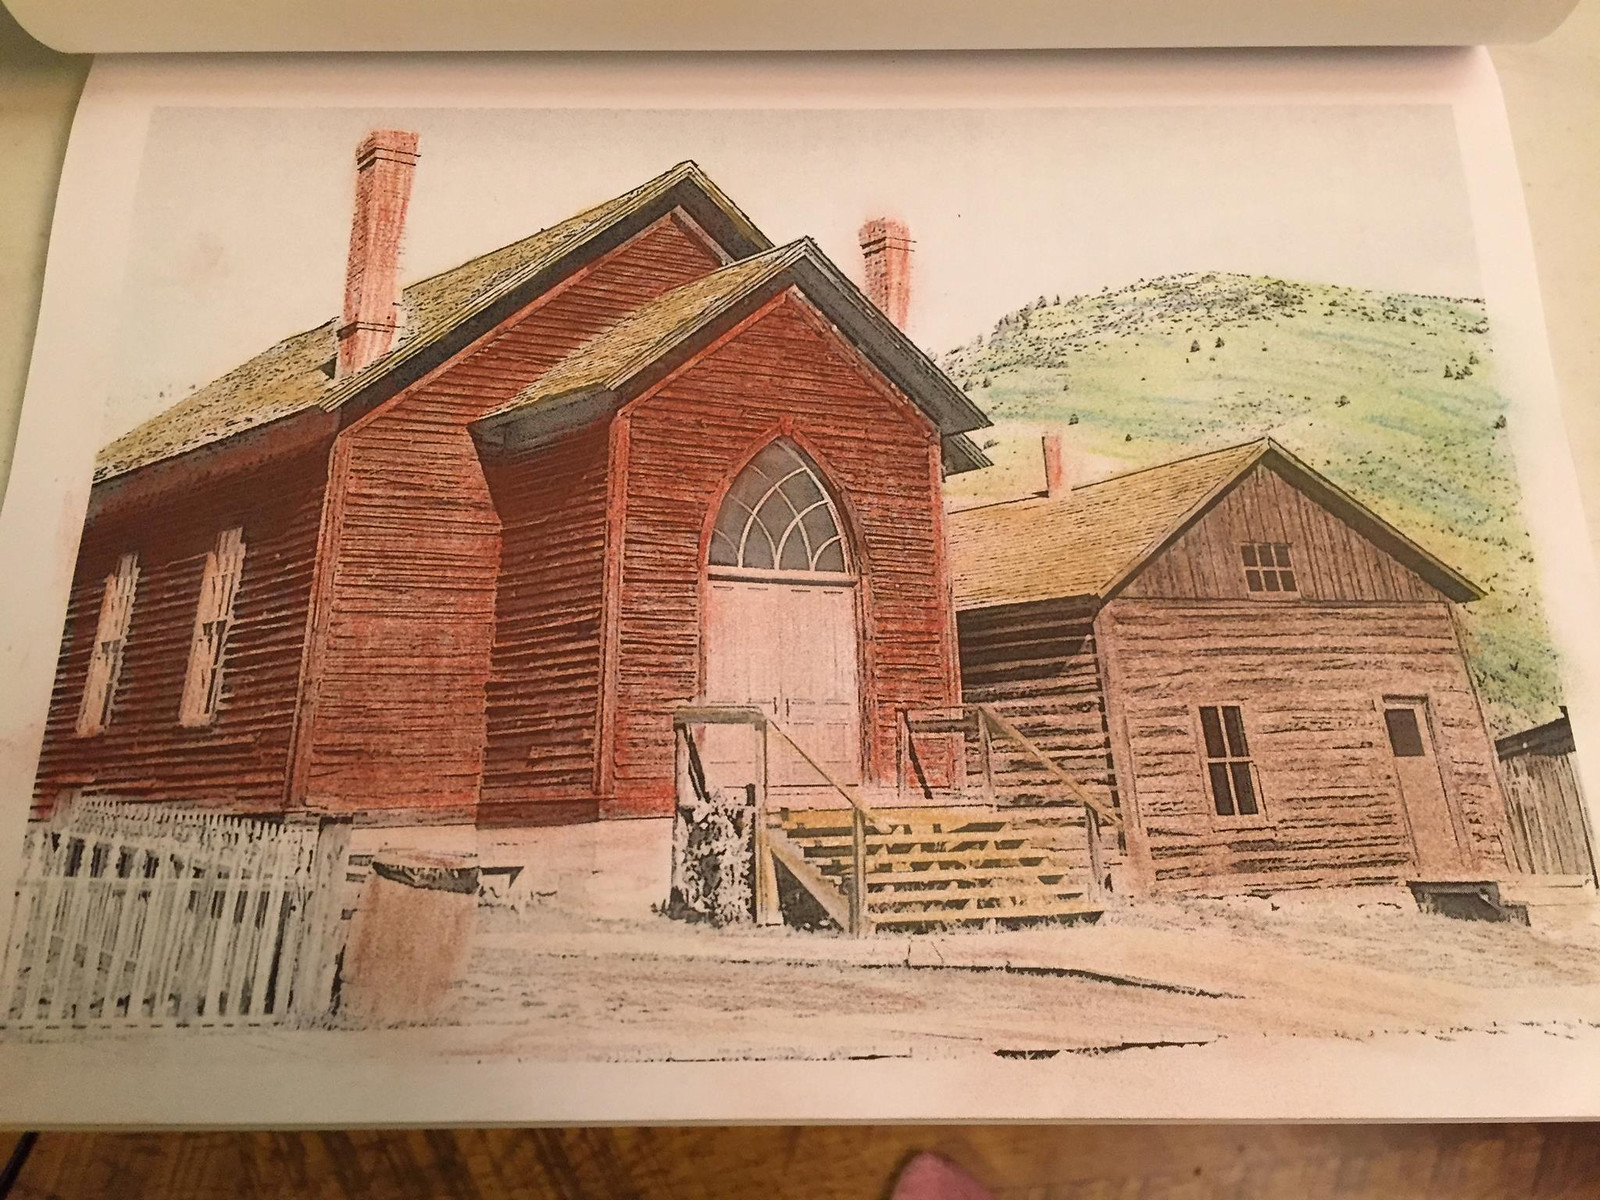 The ghost town in Bannack State Park is another coloring page from Coloring the West, An Adult Coloring Book for Travelers.